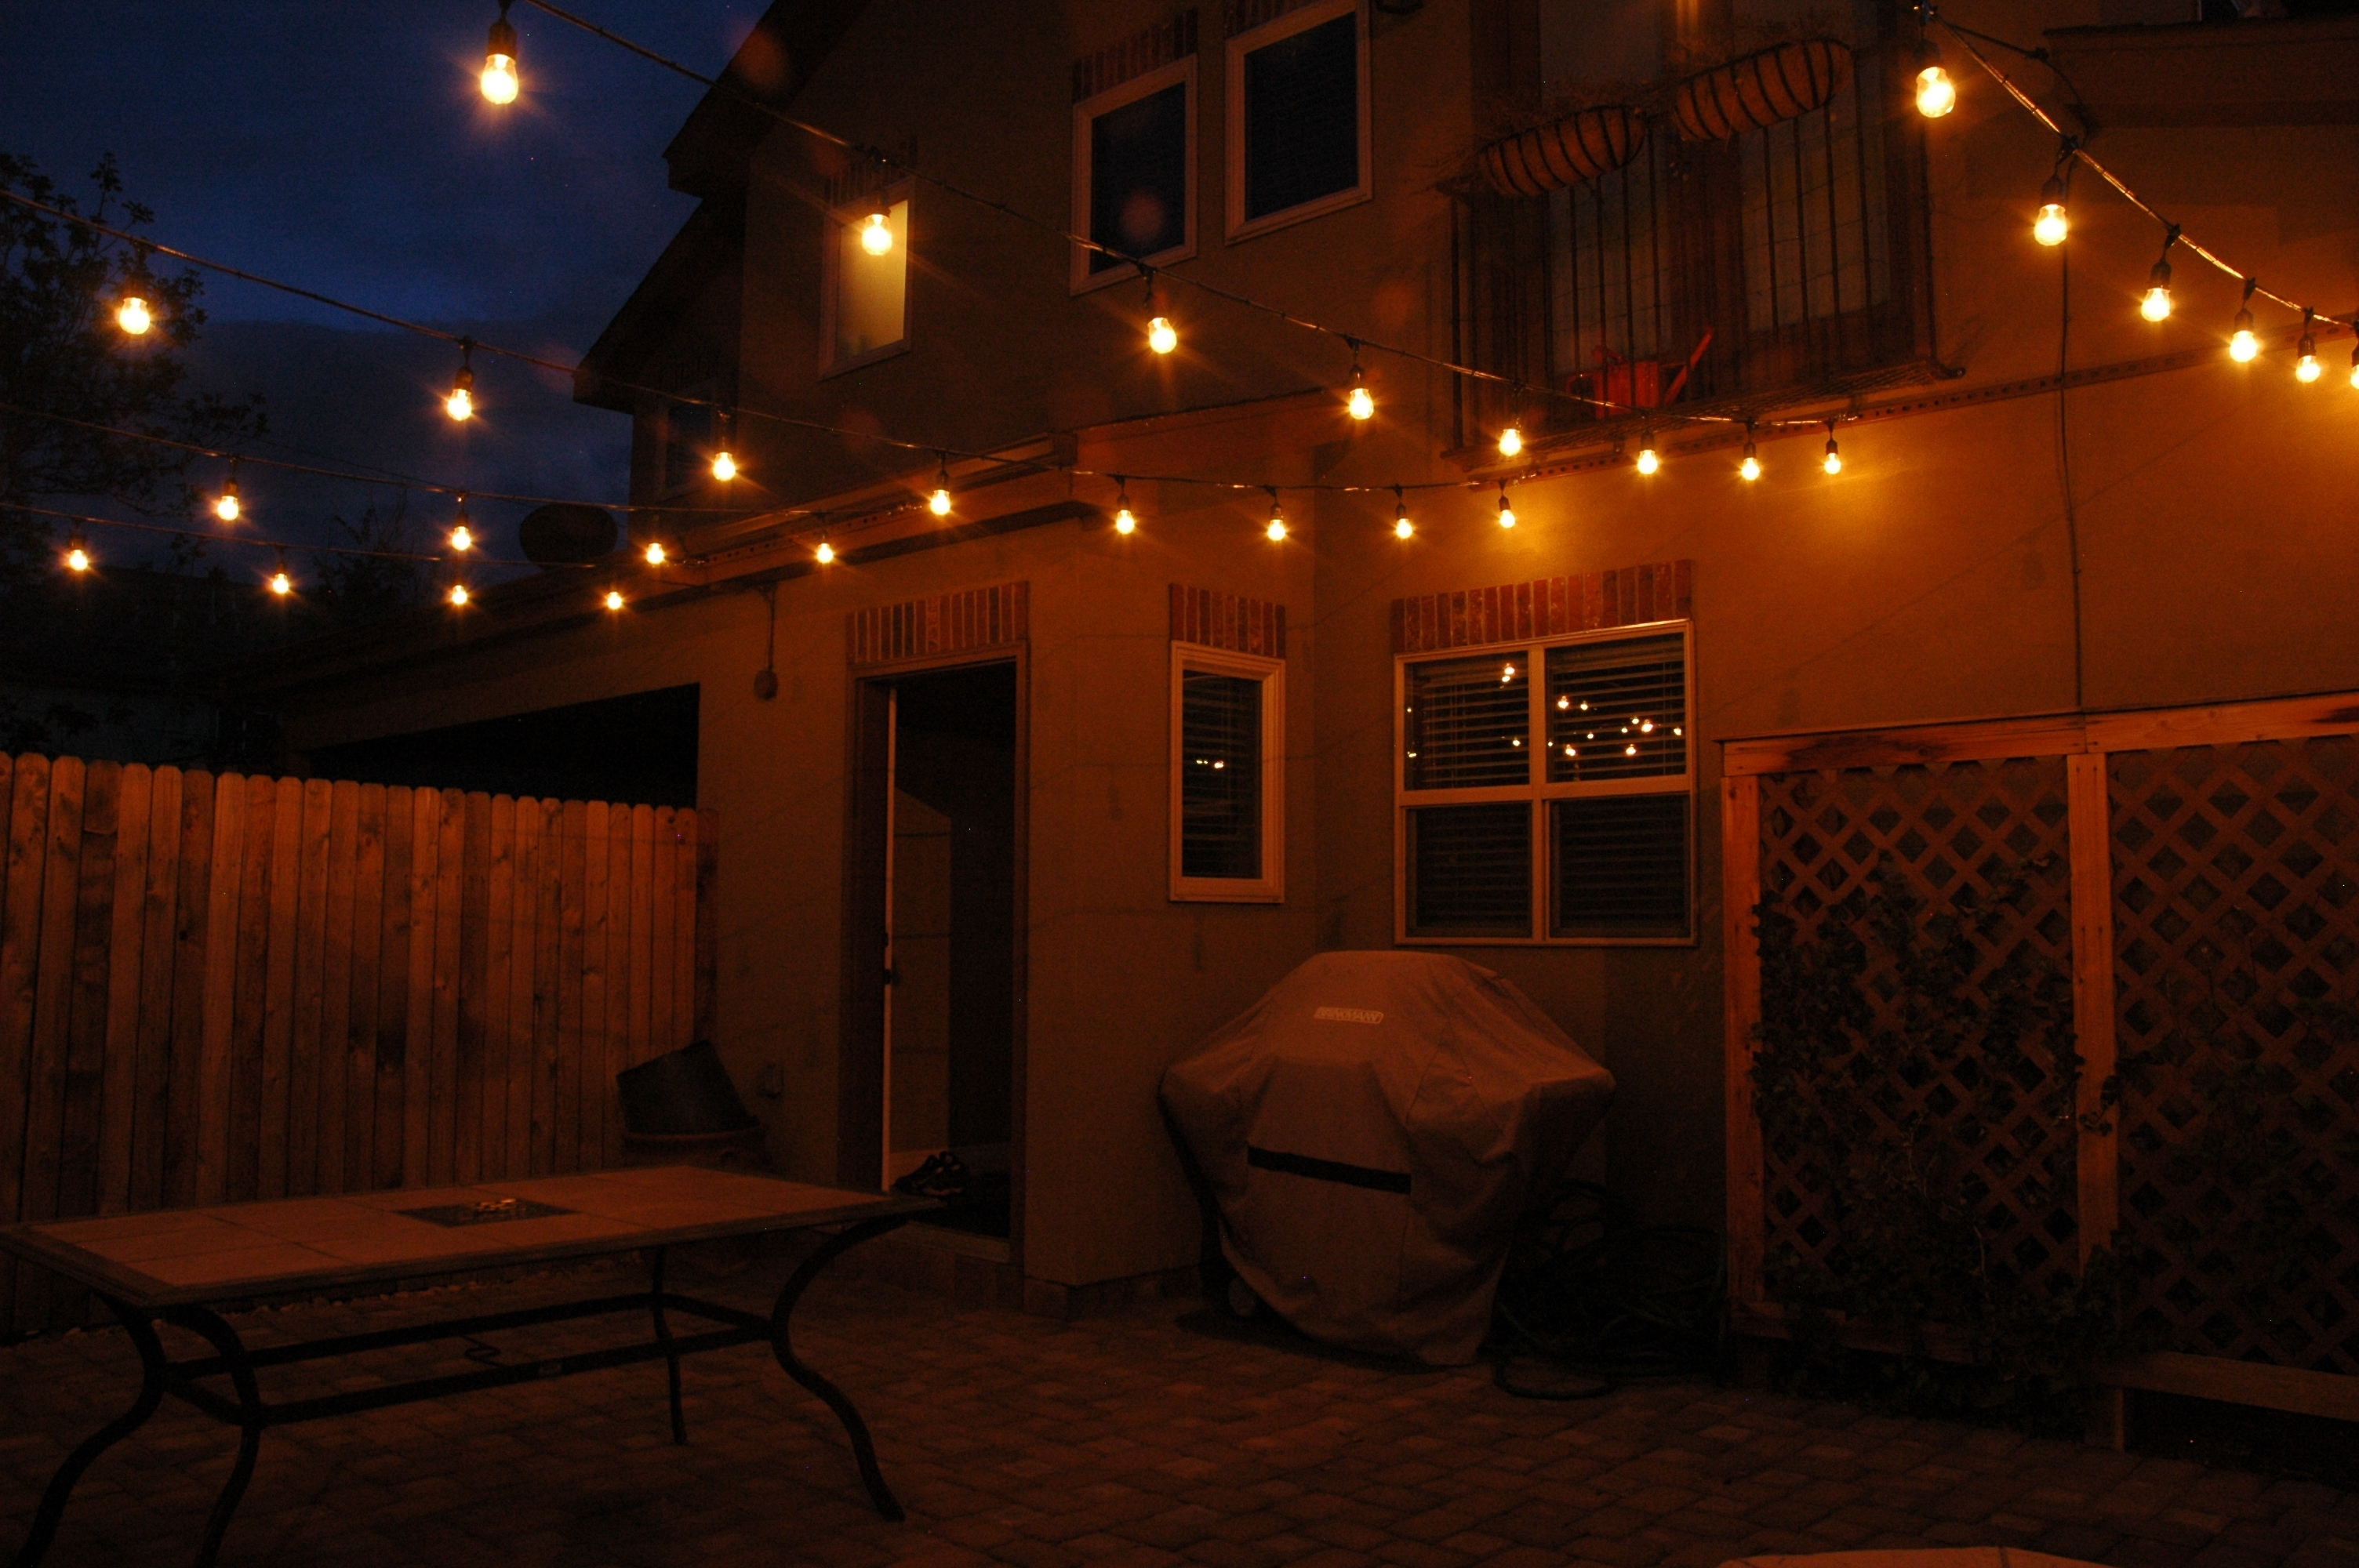 Patio String Lights Target Solar Led Outdoor Pole Indoor Uk With For Modern Outdoor Solar Lights At Target (#12 of 15)